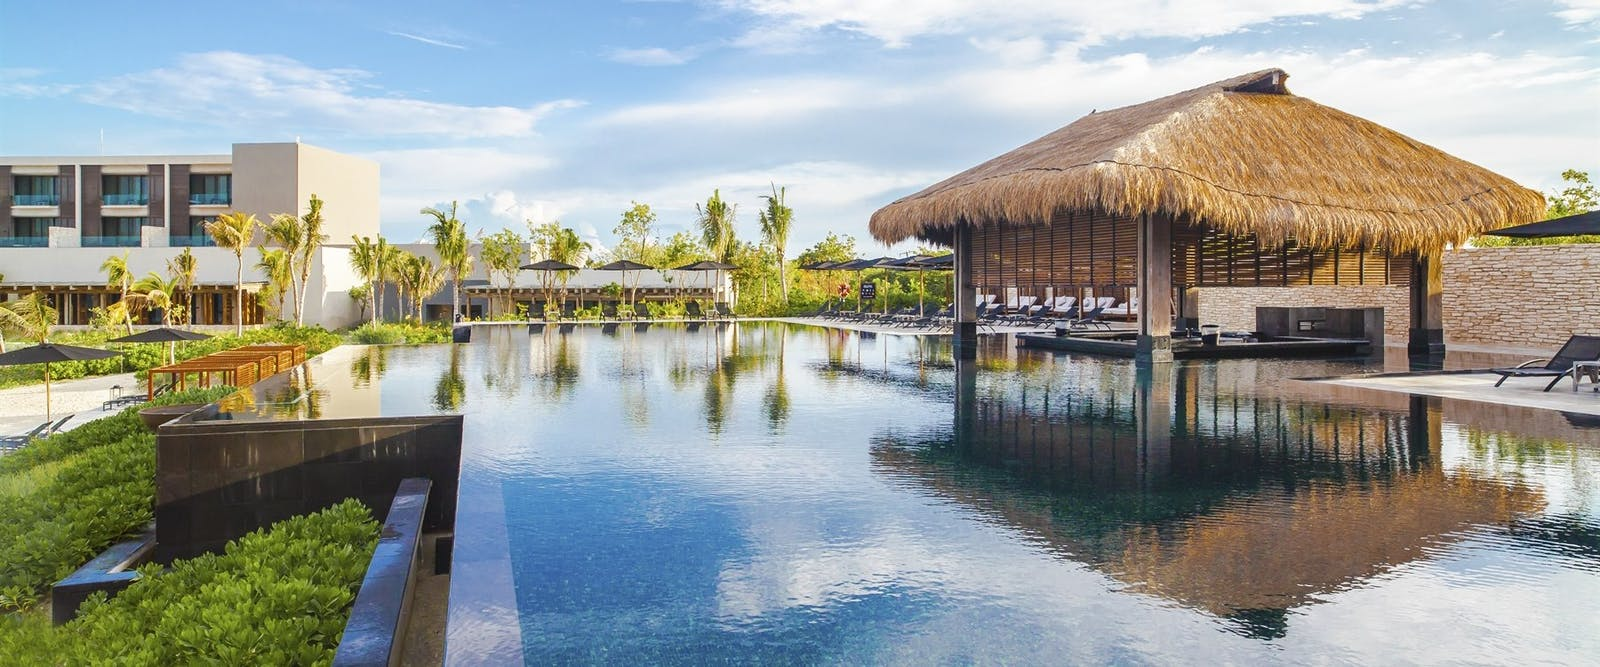 Main pool at NIZUC Resort and Spa, Riviera Maya